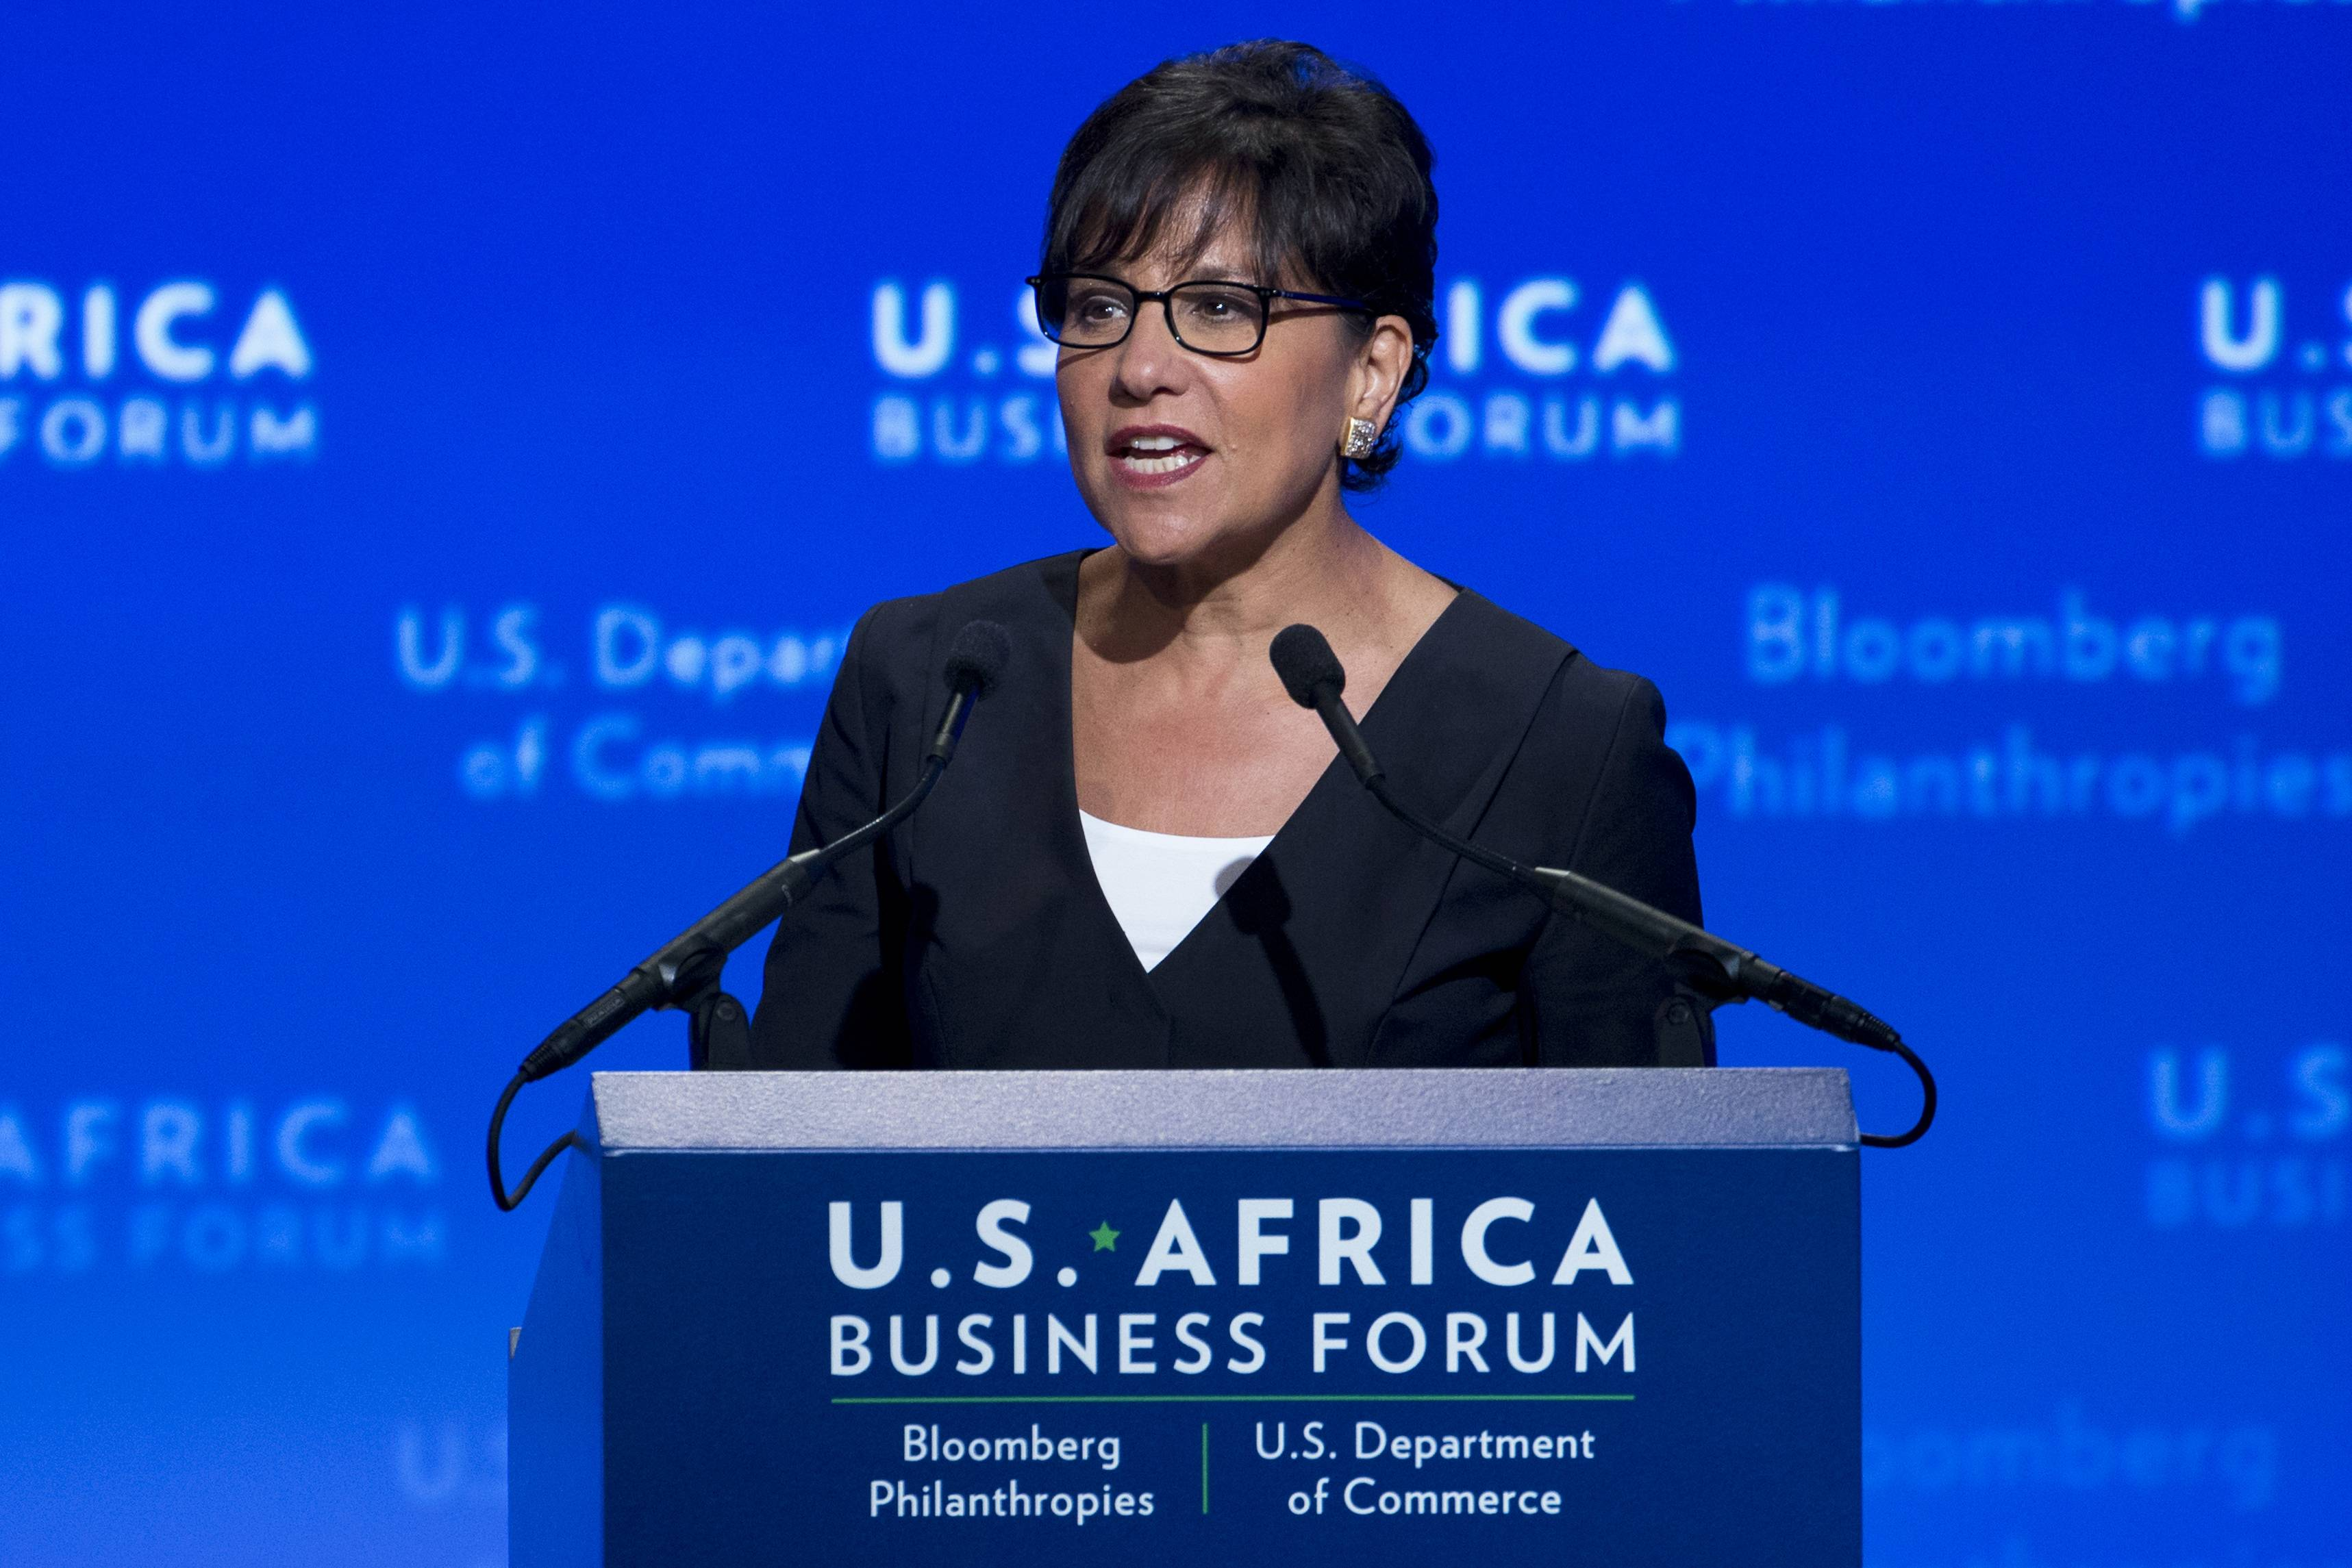 Commerce Secretary Penny Pritzker speaks at the beginning of the U.S.-Africa Business Forum during the U.S.-Africa Leaders Summit at the Mandarin Oriental Hotel in Washington, Tuesday, Aug. 5, 2014. Nearly 50 African heads of state are gathering in Washington for an unprecedented summit.